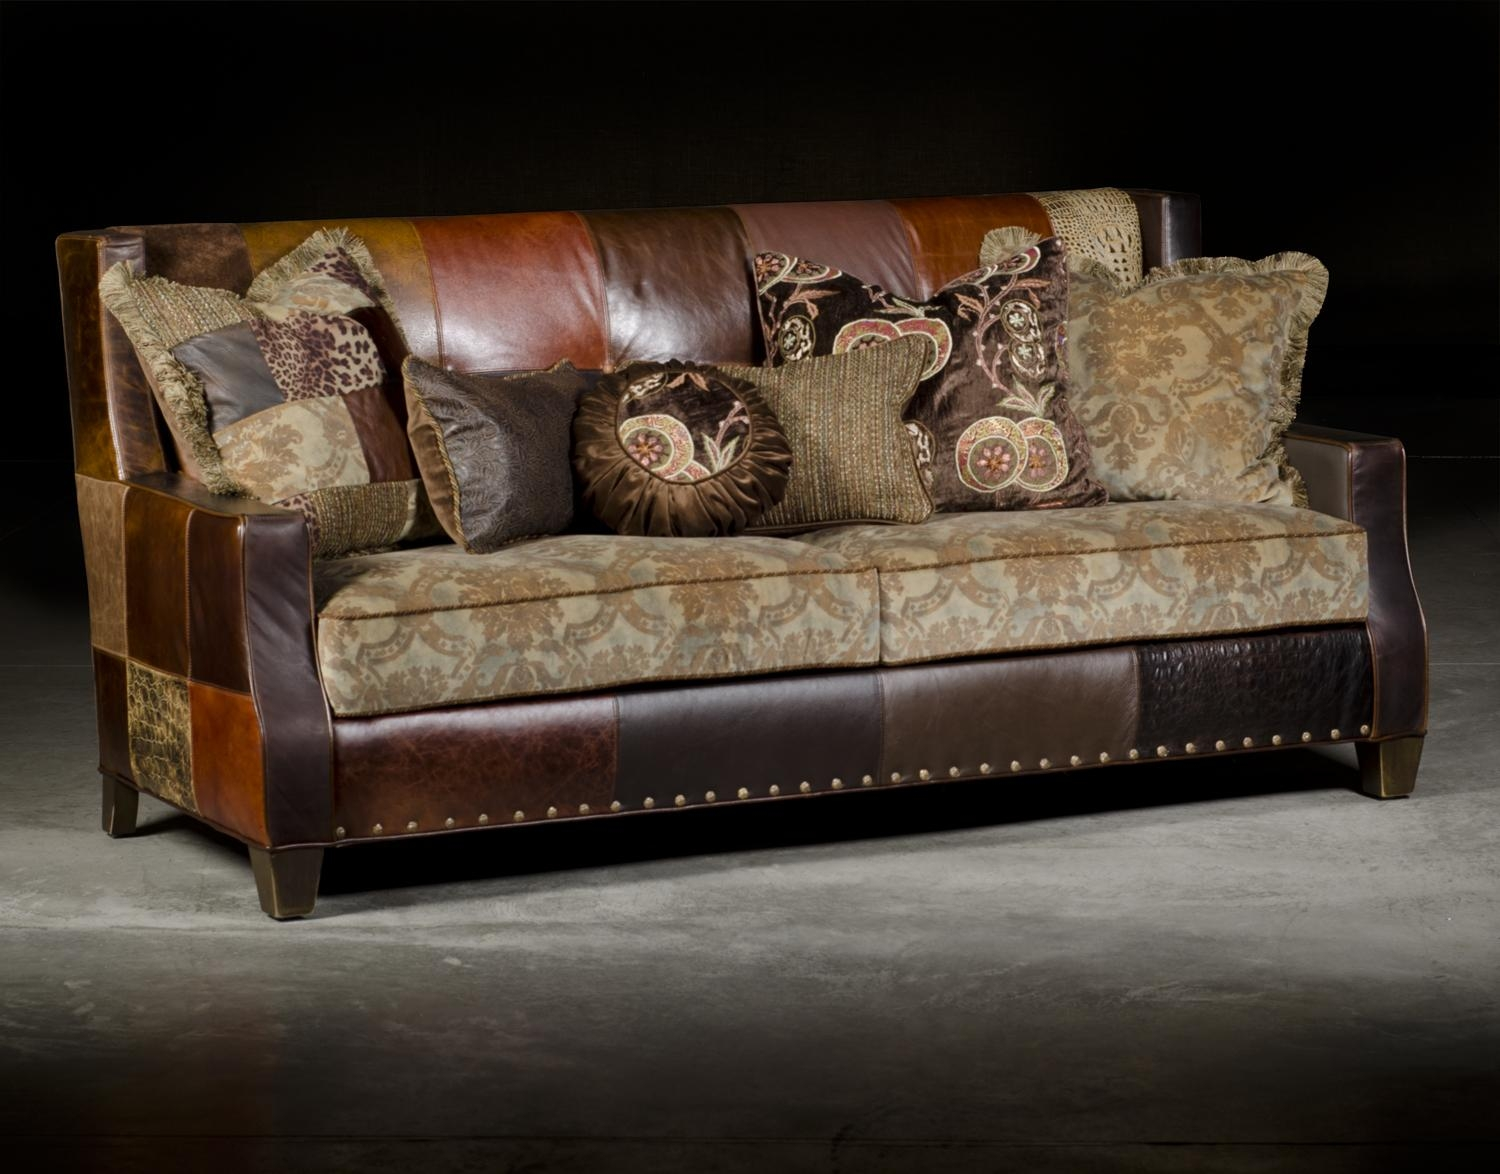 Custom Patchwork Leather & Cowhide Sofa | City Creek Furniture Inside Cowhide Sofas (View 2 of 20)